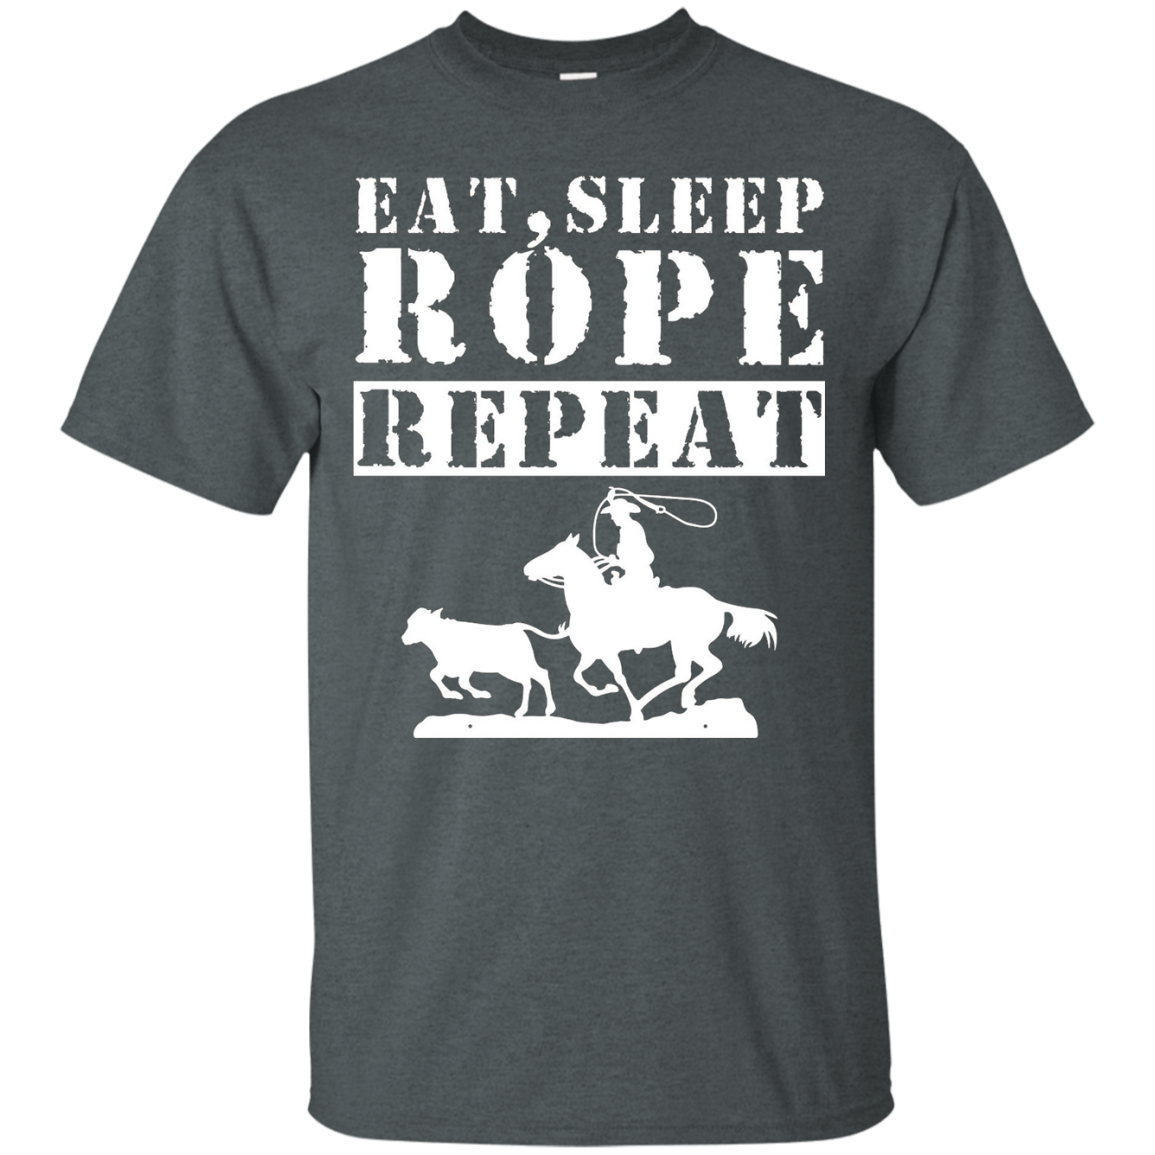 Roping Shirts - Eat Sleep Rope Repeat Shirt